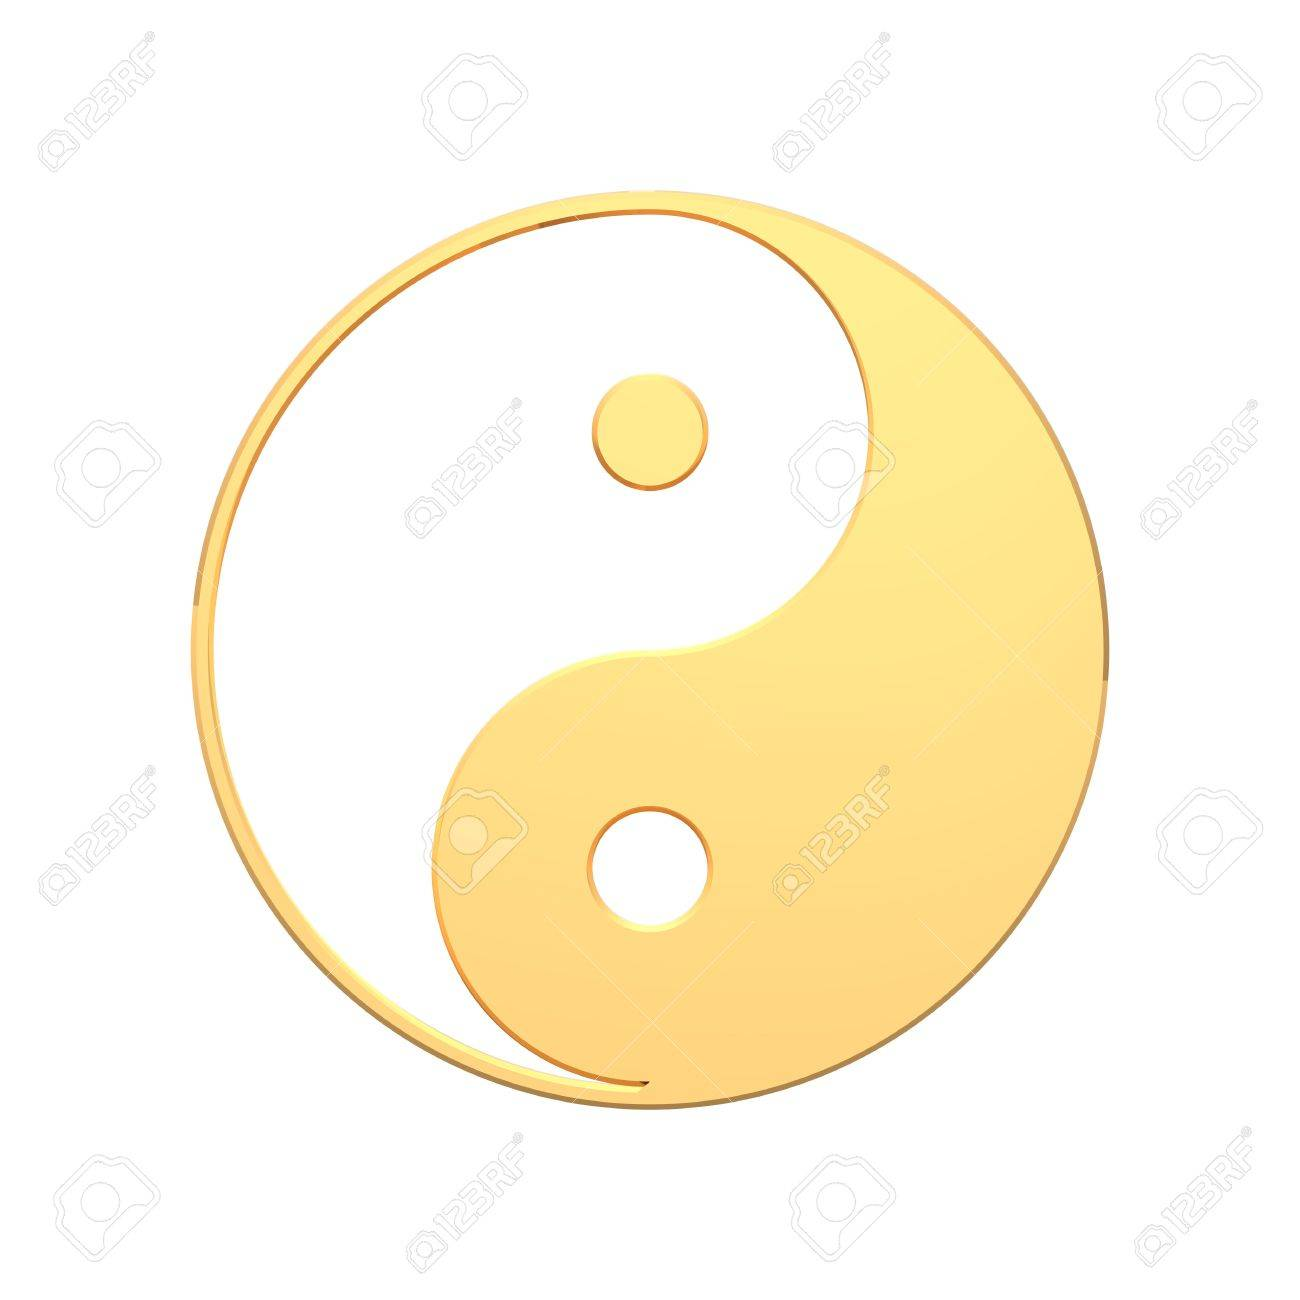 Gold Tai Chi Yin Yang Sign Computer Generated 3d Photo Rendering